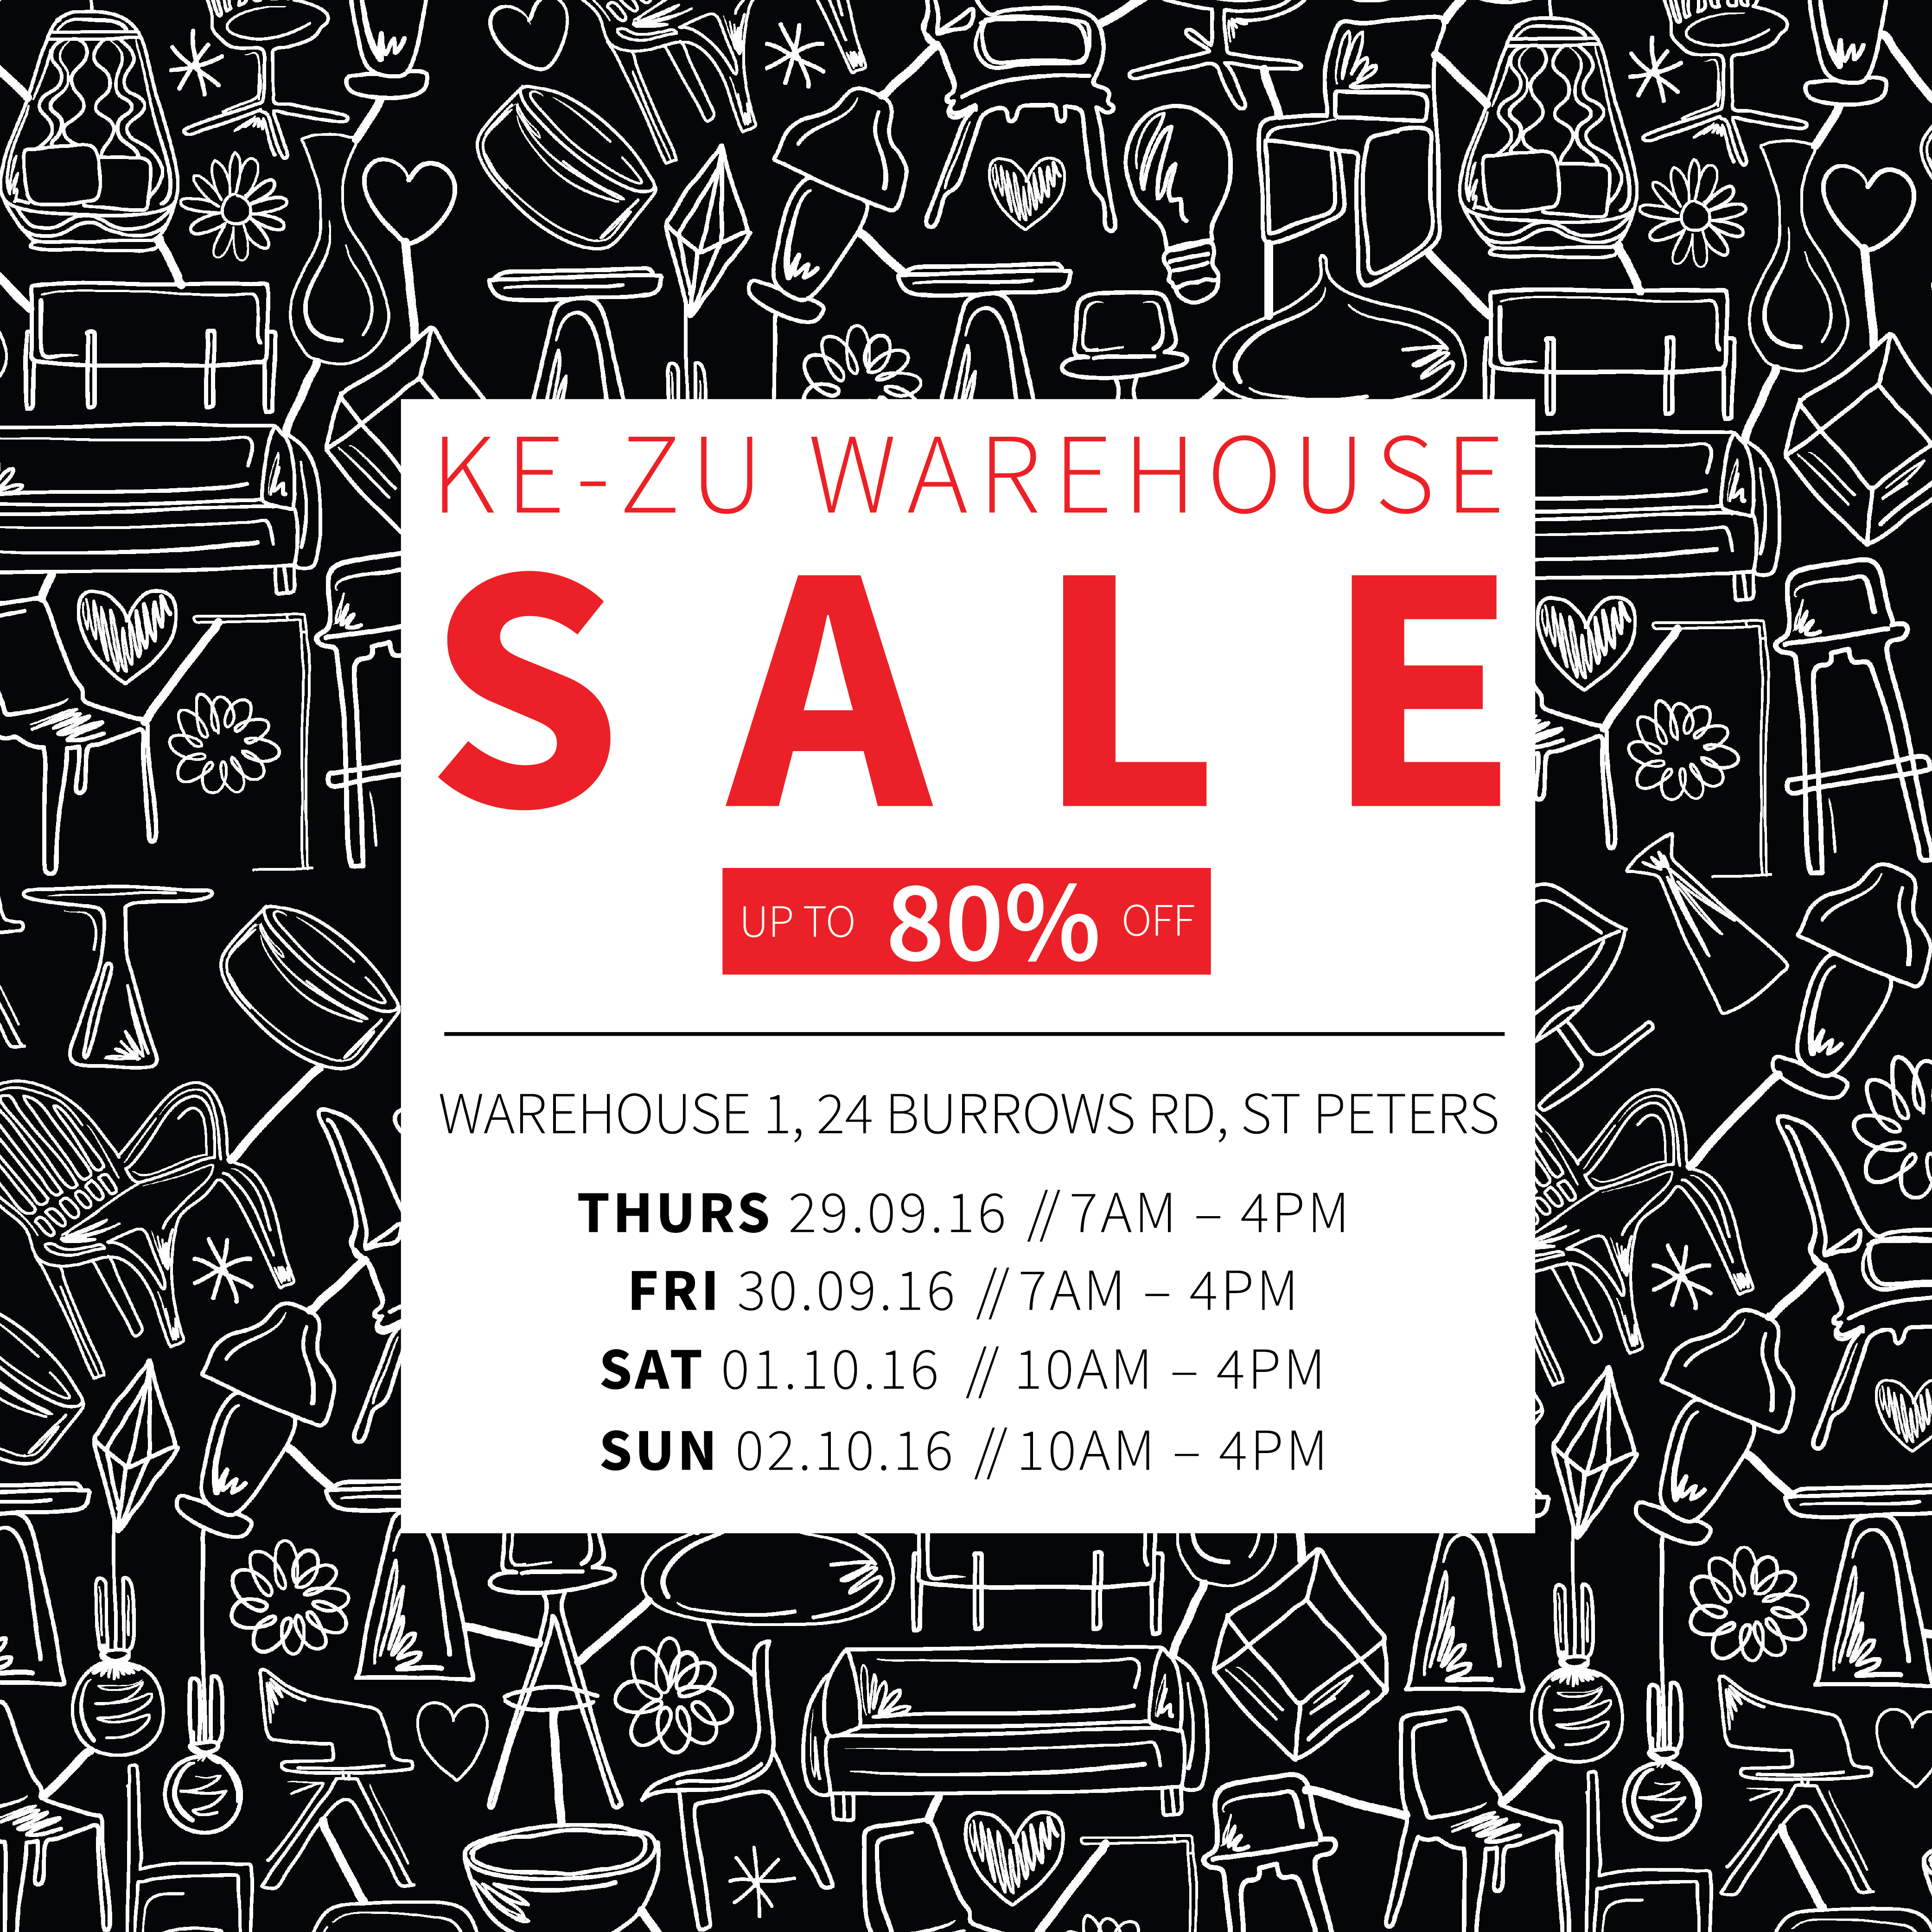 warehouse-sale-blog-final-02